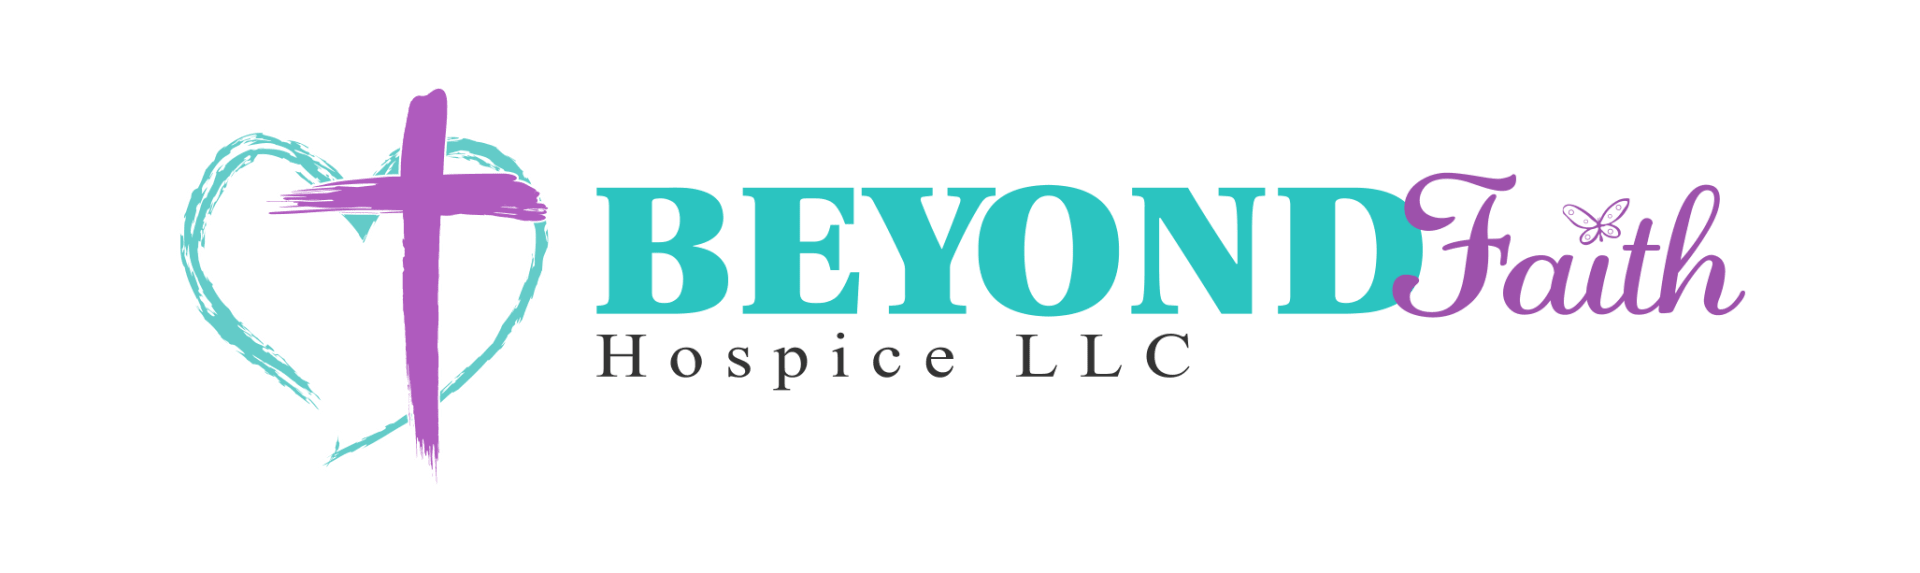 Beyond-Faith-Hospice-w1920.png